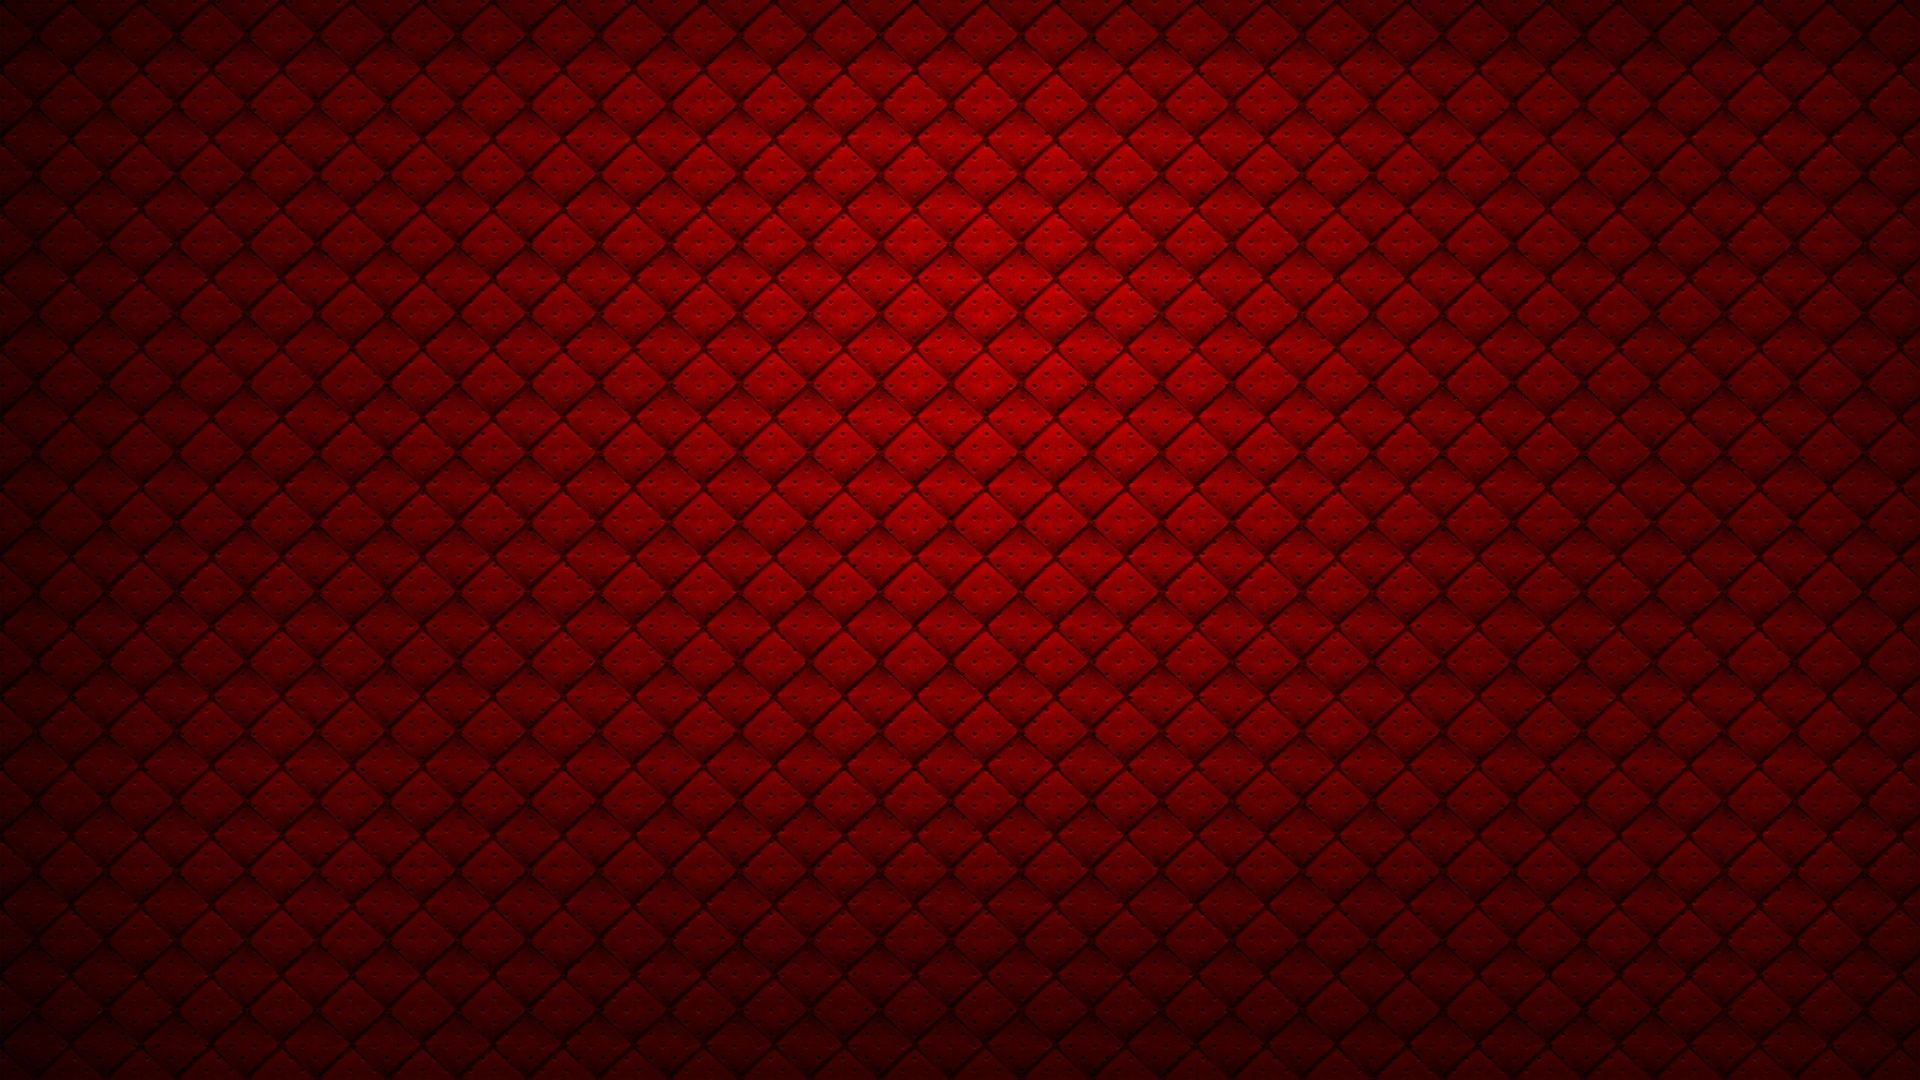 wallpaper-1920x1080-red-wallpapers-fire-horse-ink-smoke-cubes-splash-on-cards-ice.jpg (1920×1080)